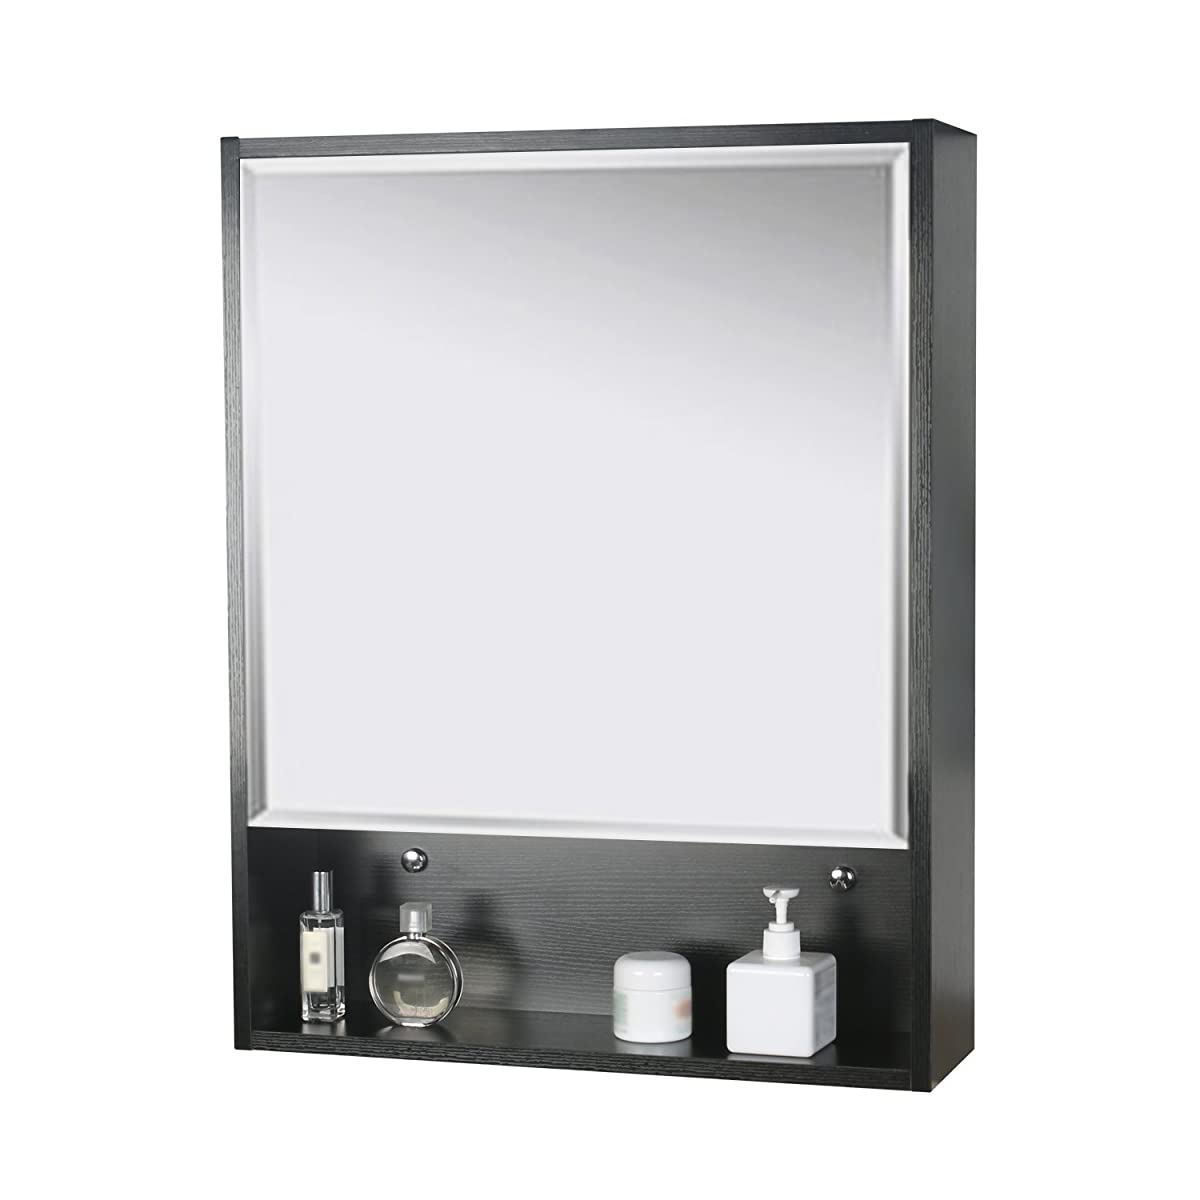 Eclife 22 x 28 large storage bathroom medicine cabinet - Large medicine cabinet mirror bathroom ...